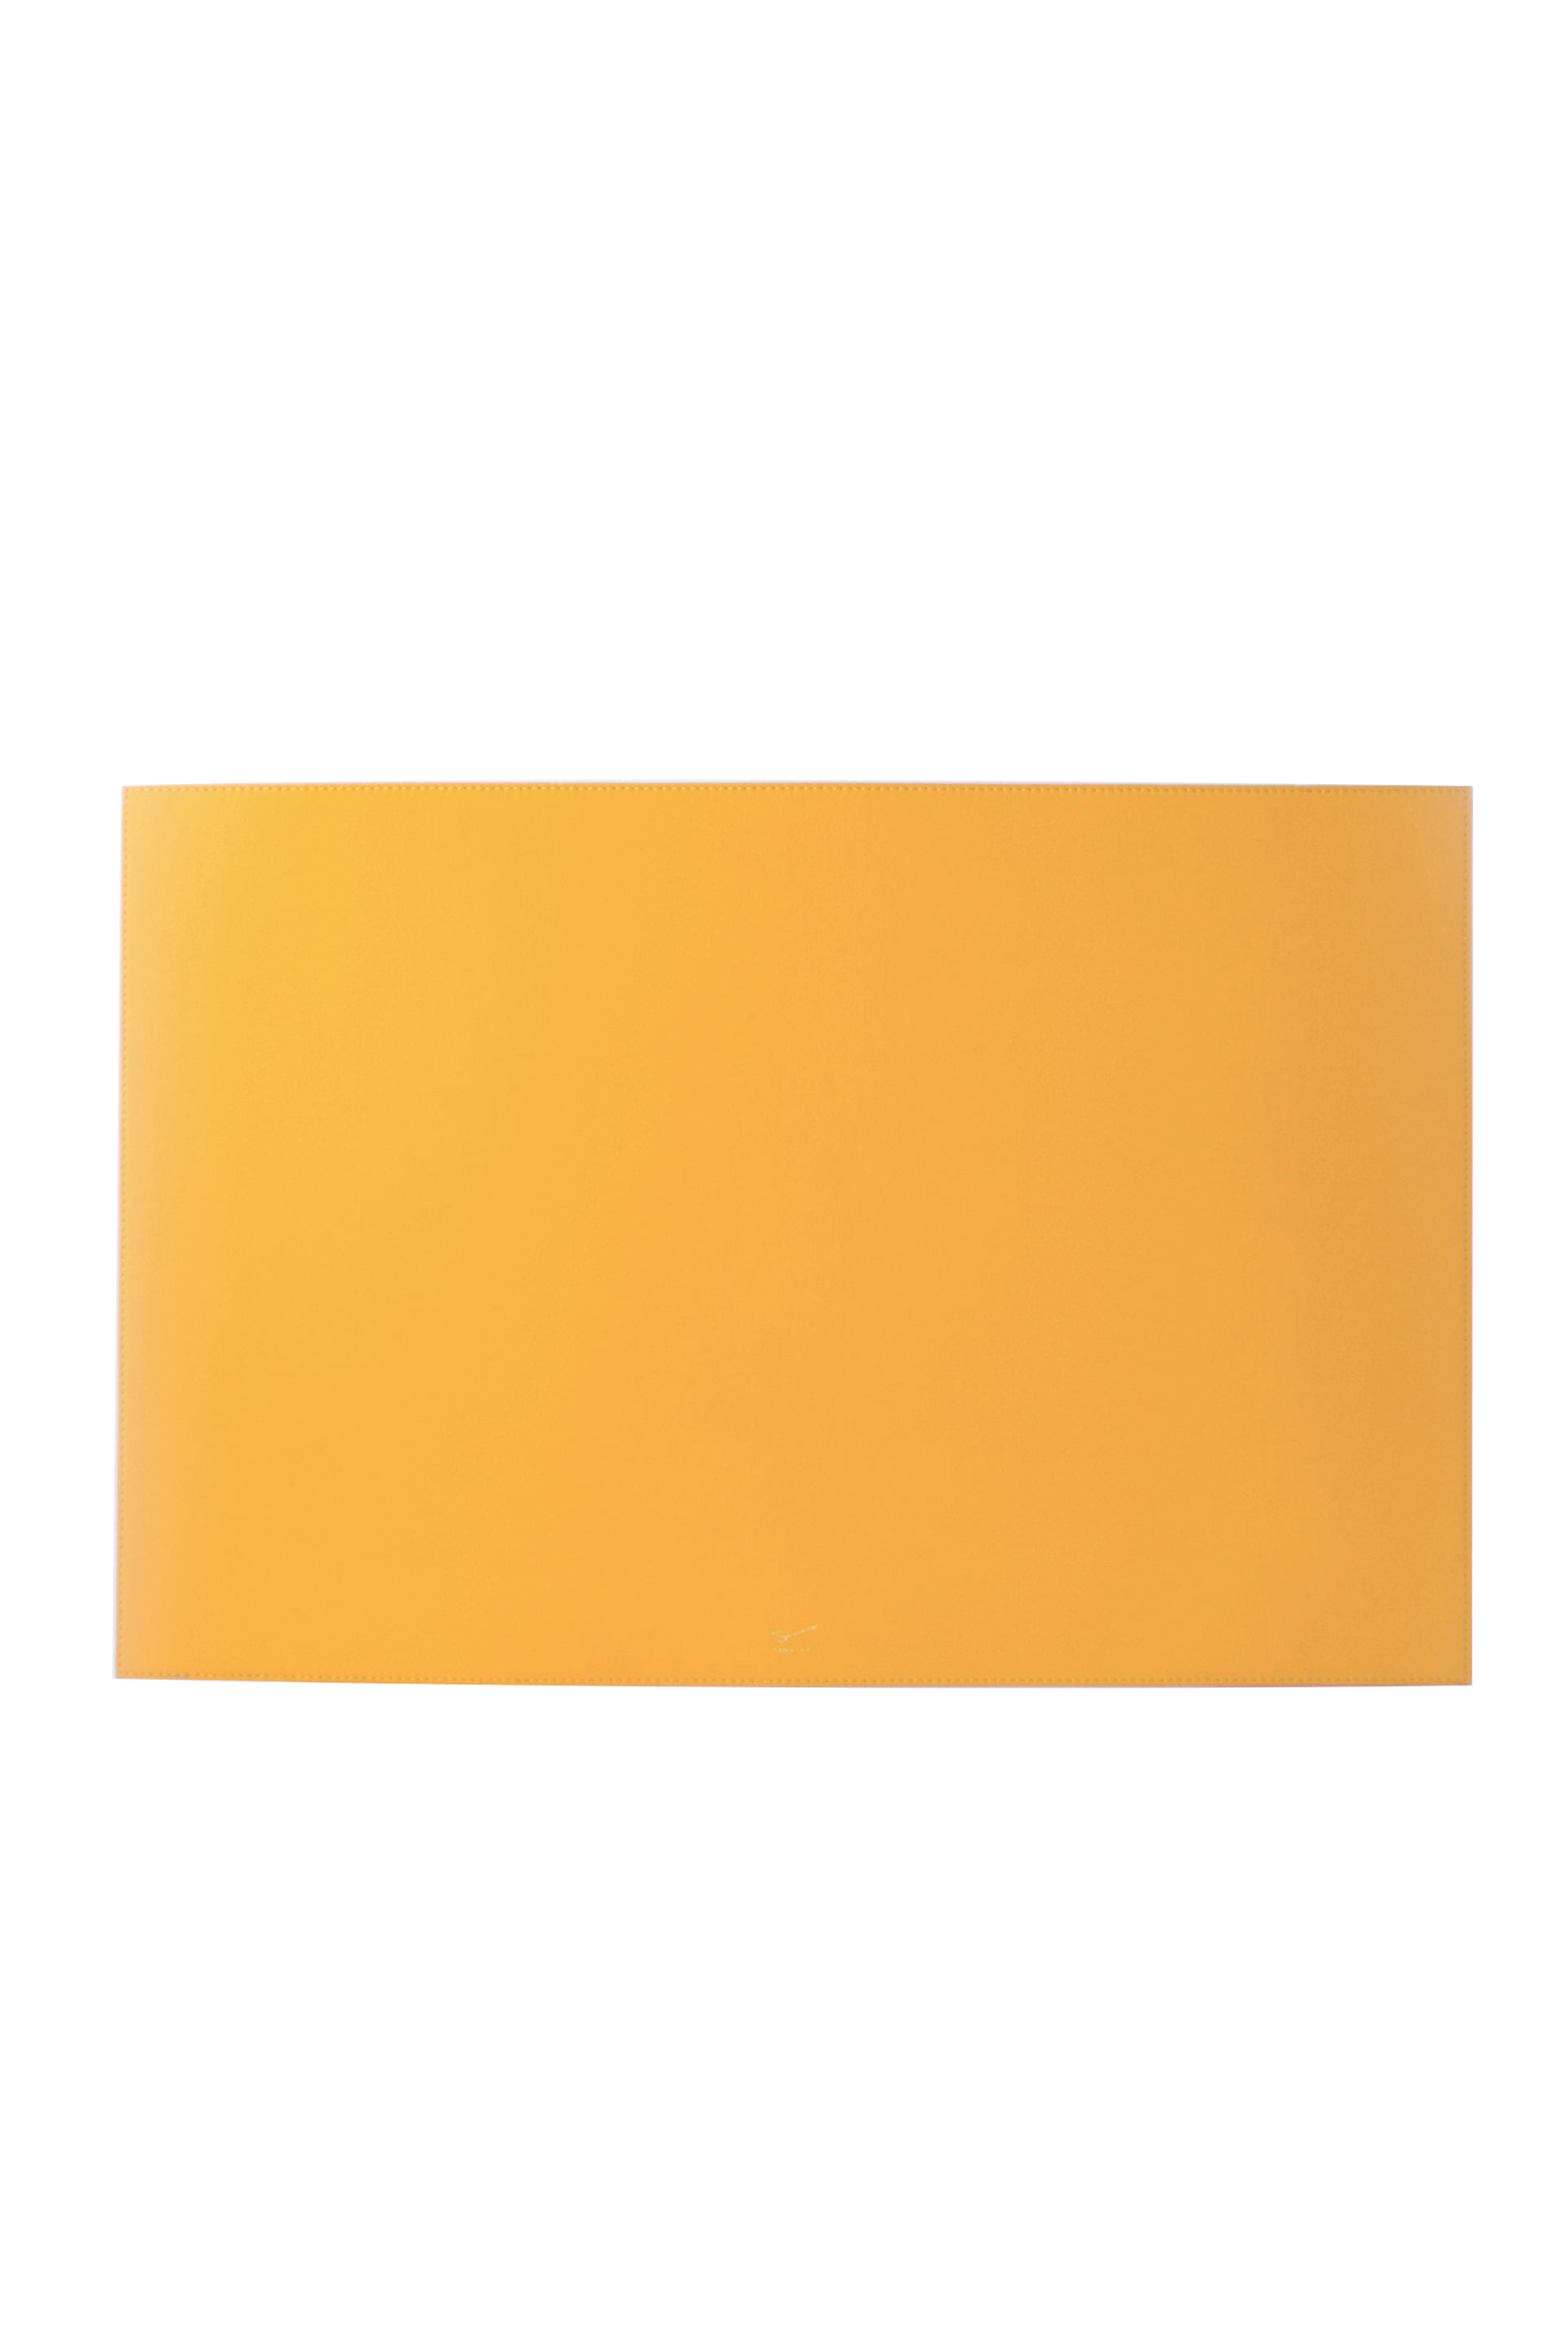 DESK PAD 02 S.Yellow